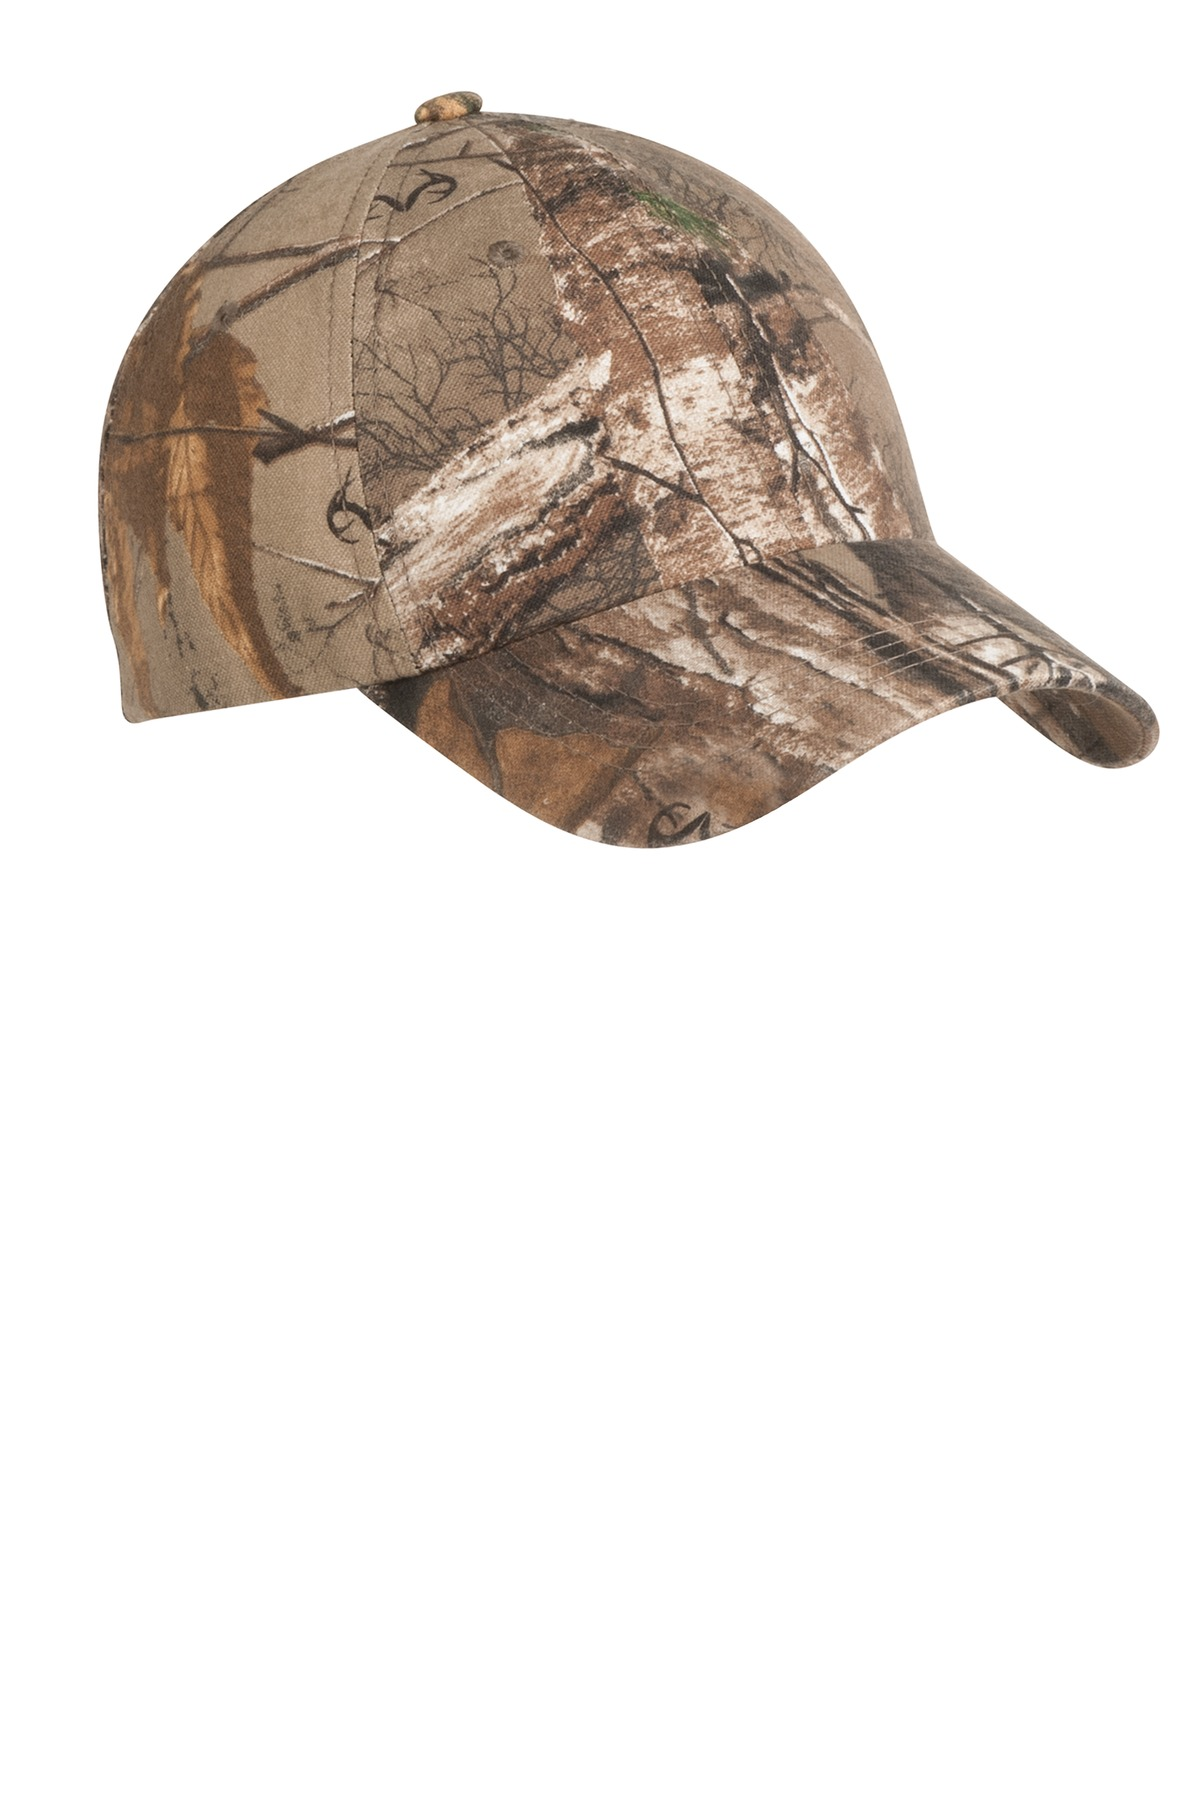 Port Authority ®  Pro Camouflage Series Garment-Washed Cap.  C871 - Realtree Xtra